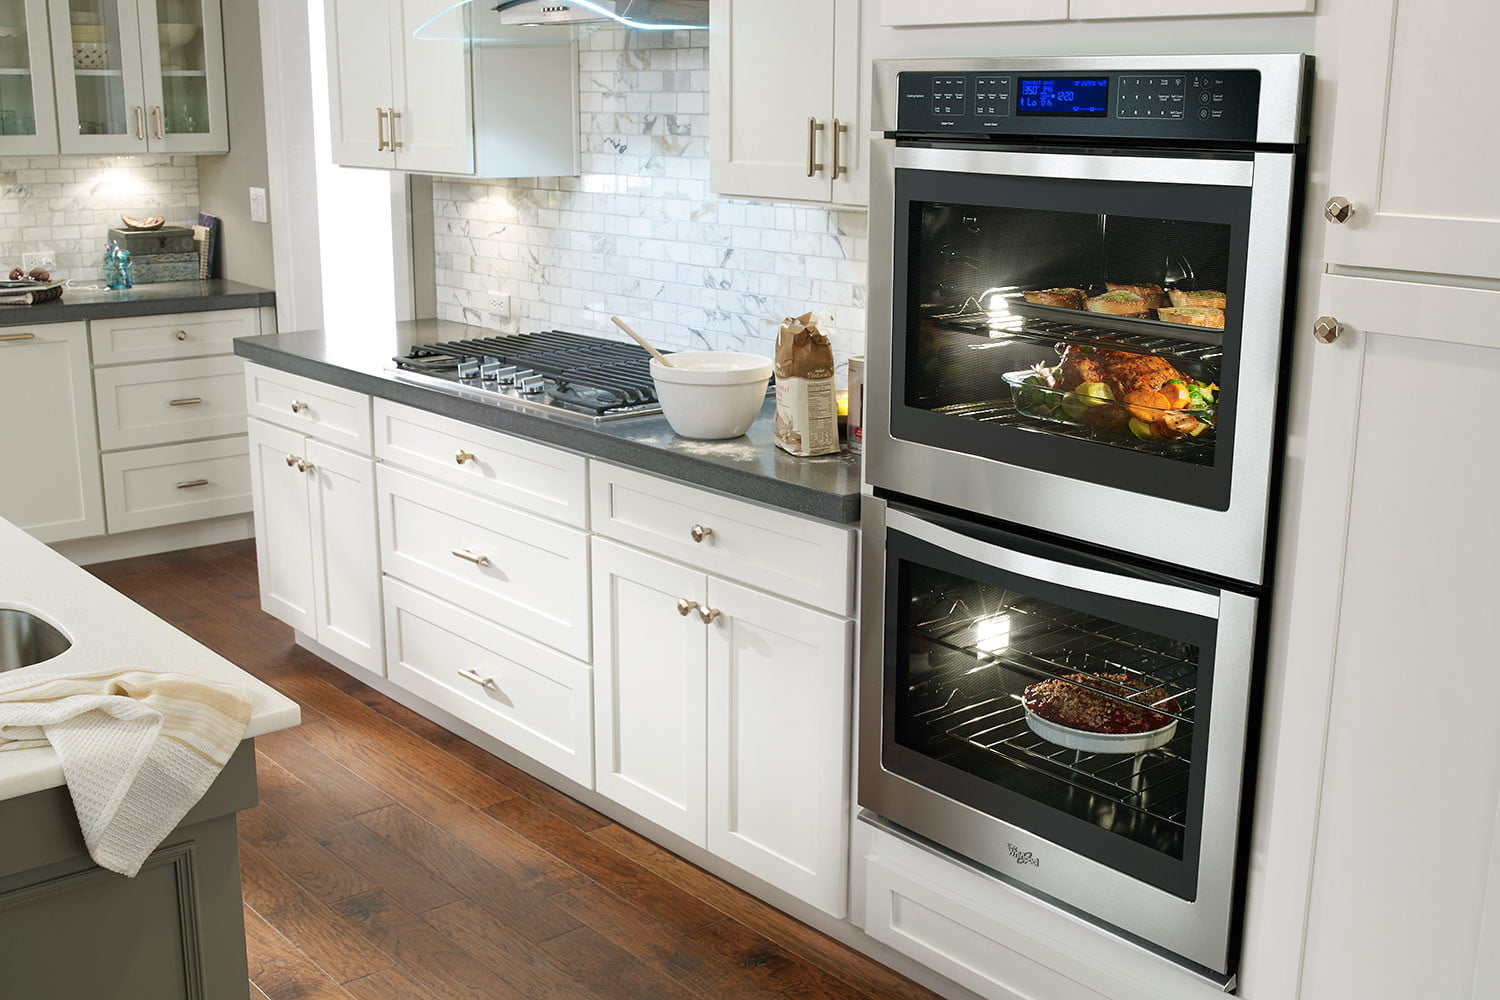 Whirlpool Acquires Yummly to Make a Smarter Kitchen | Digital Trends